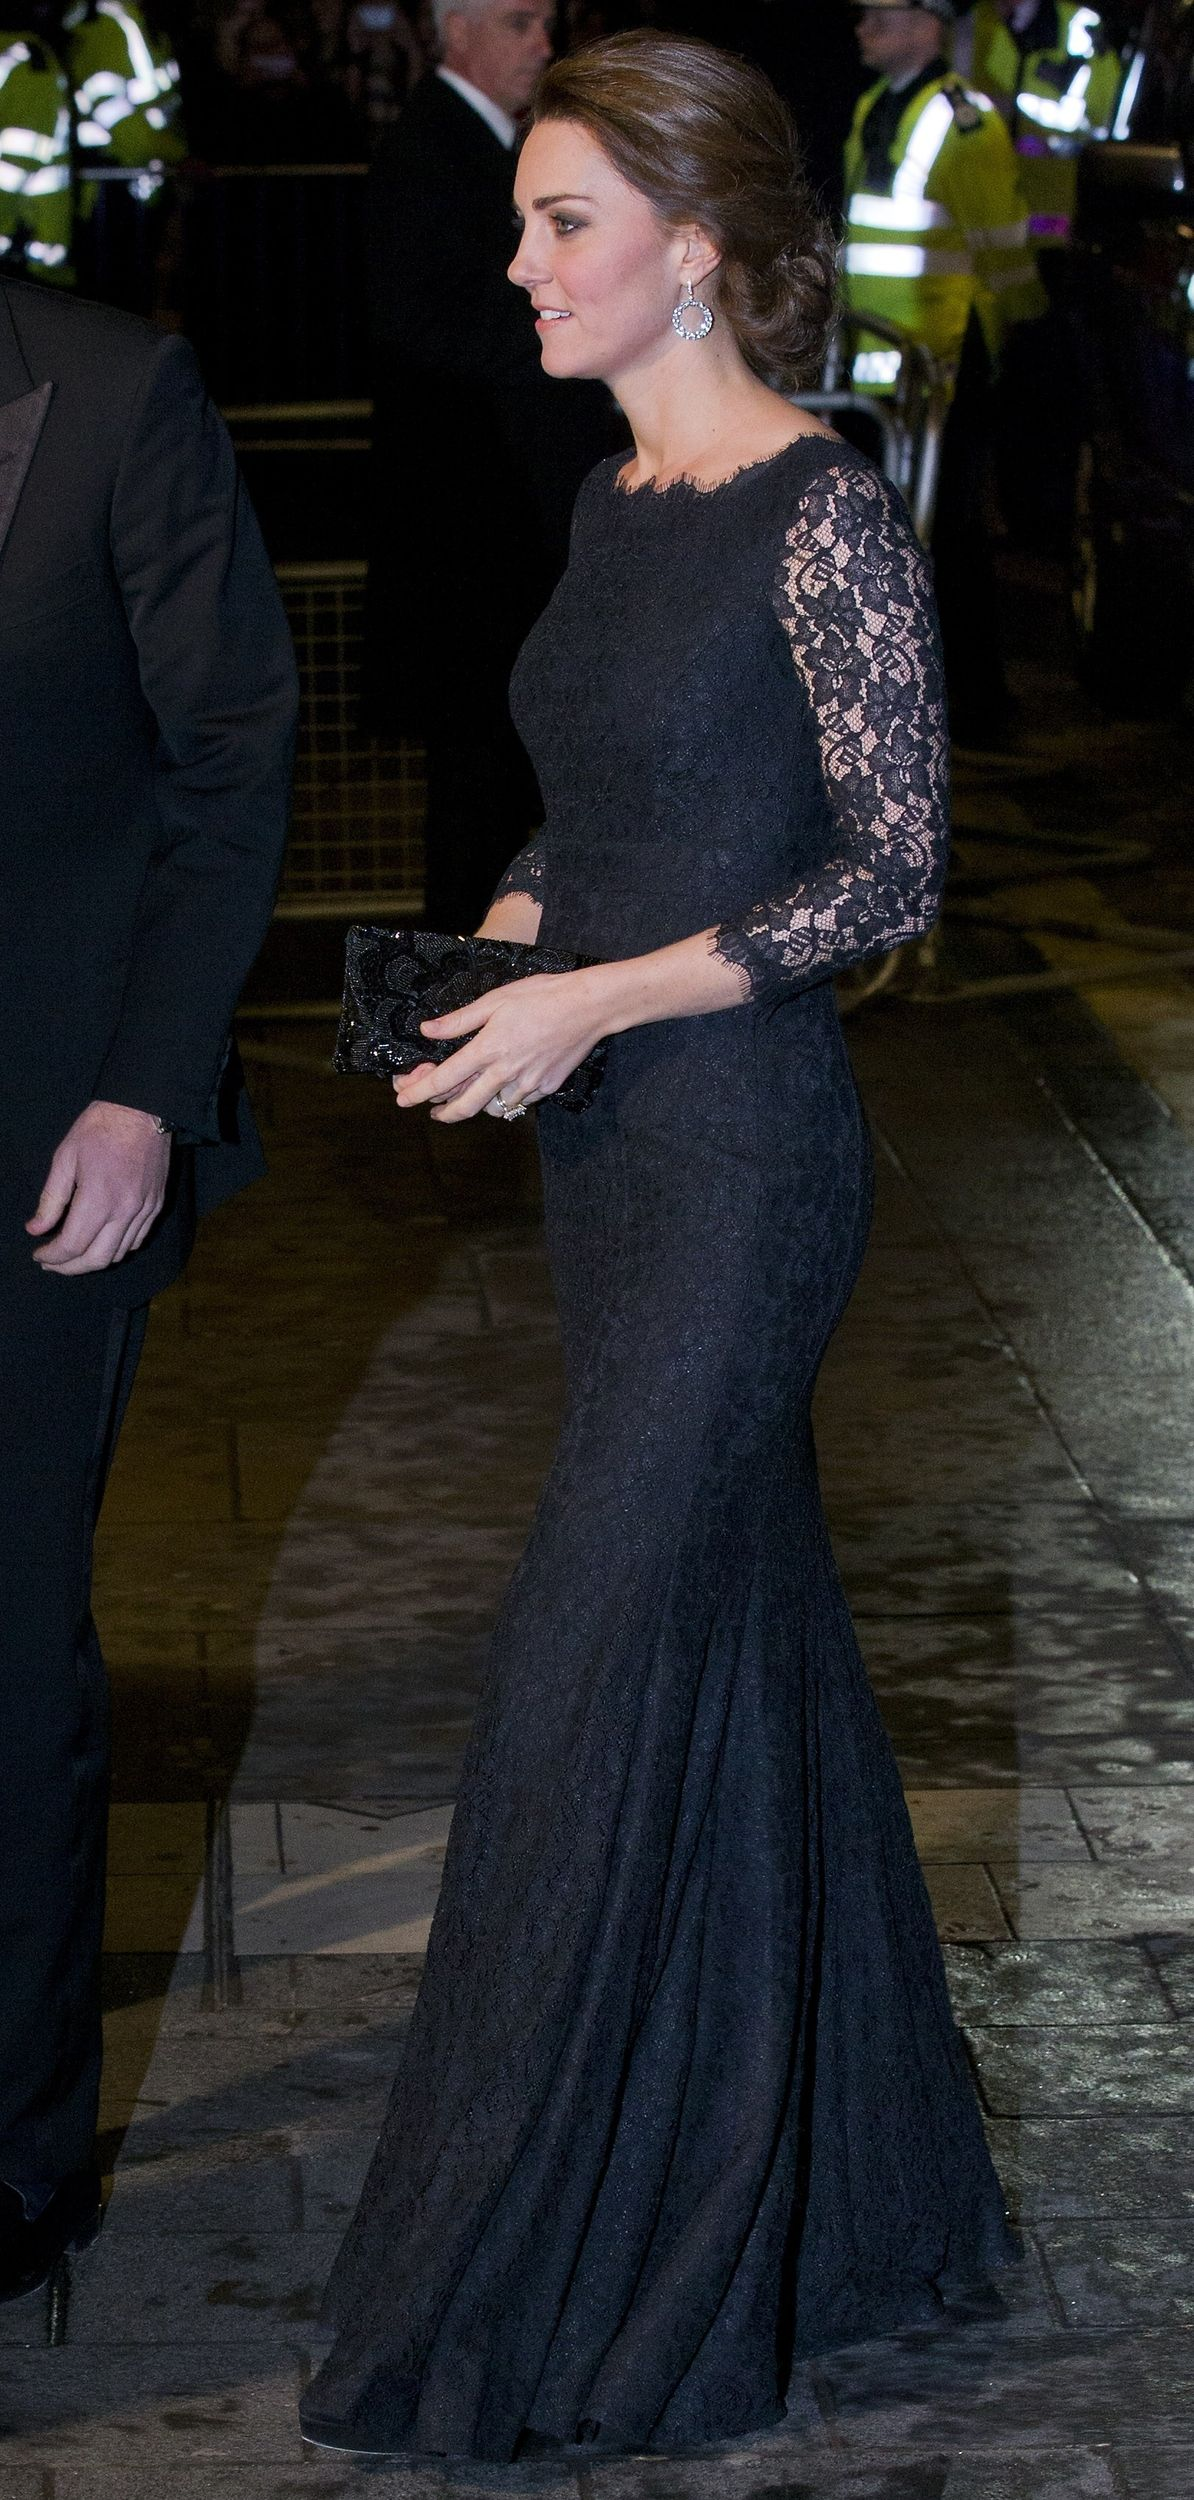 Lace dress for pregnant  Pregnant Kate is flawless in black lace Diane von Furstenberg gown